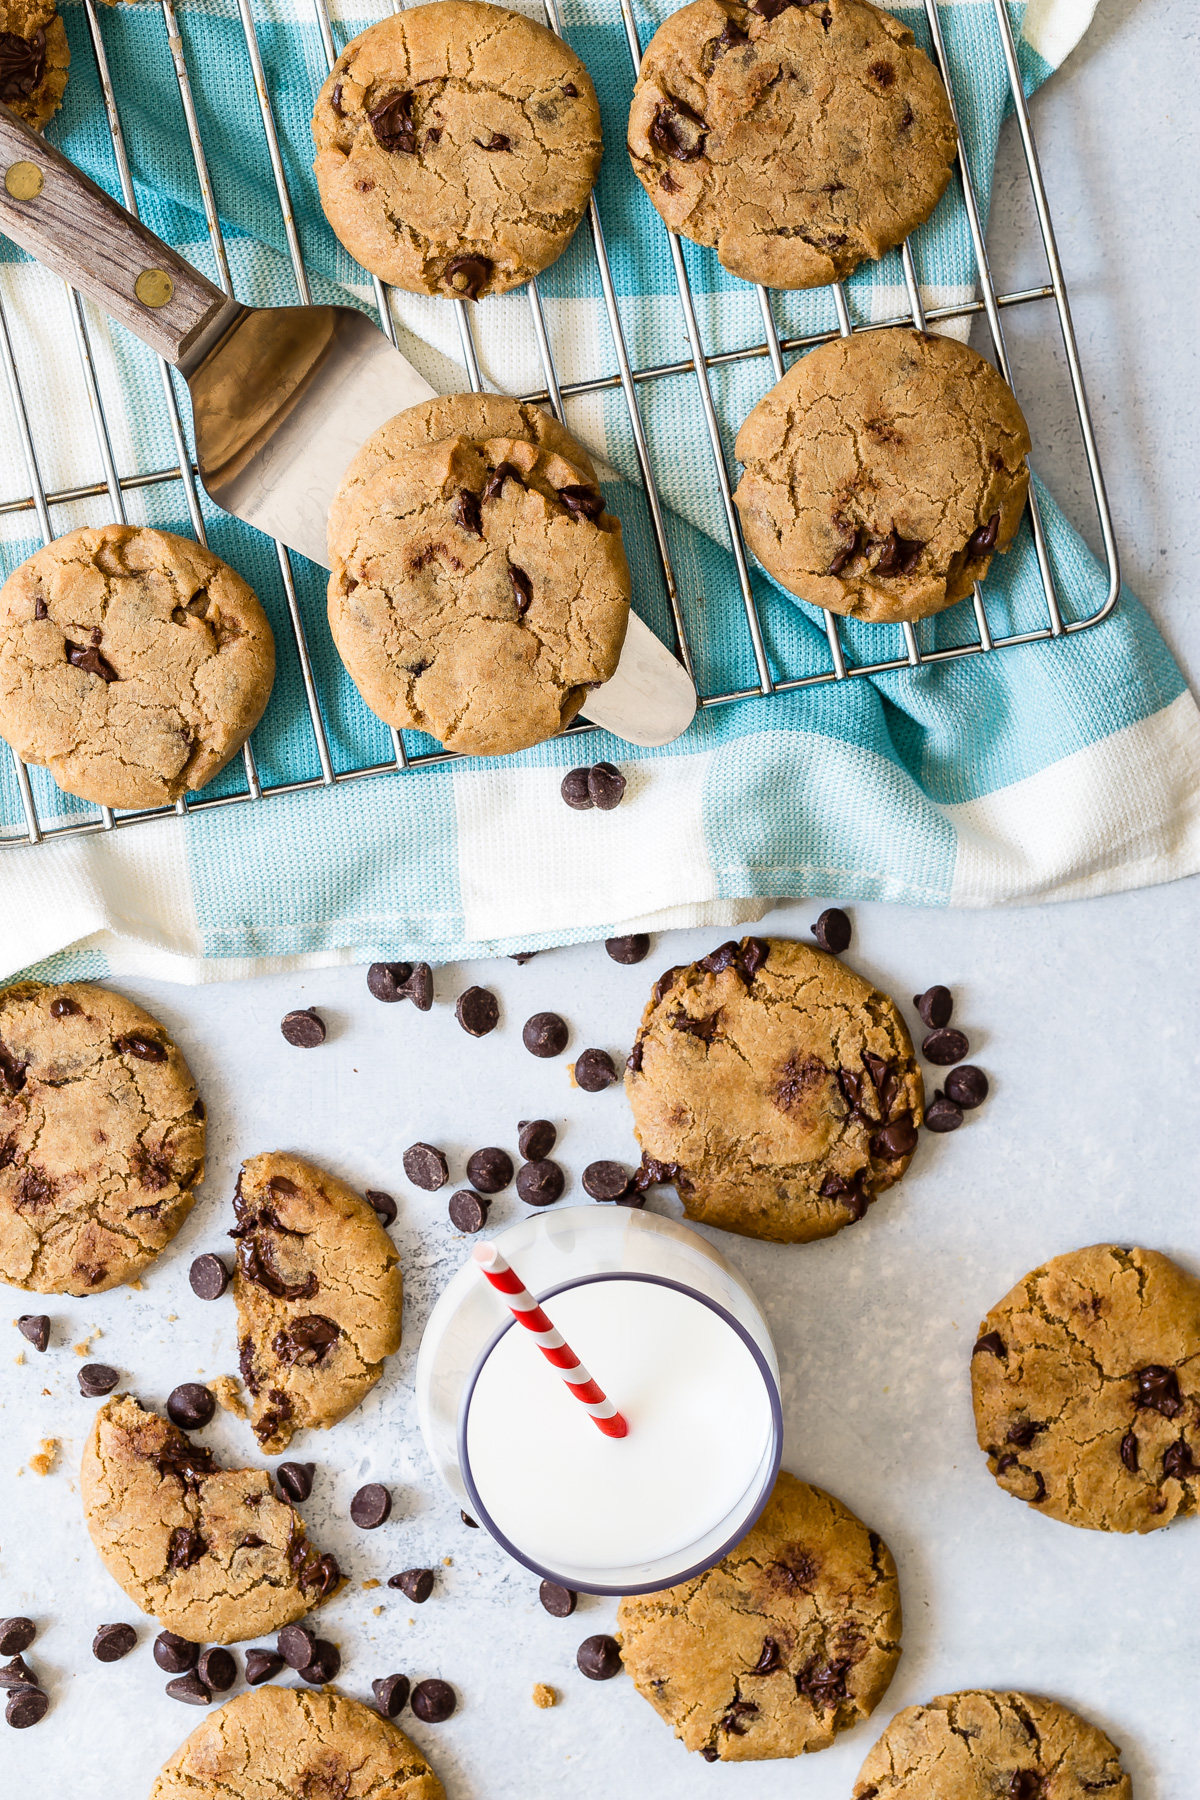 Vegan Chocolate Chip Cookies from weelicious.com